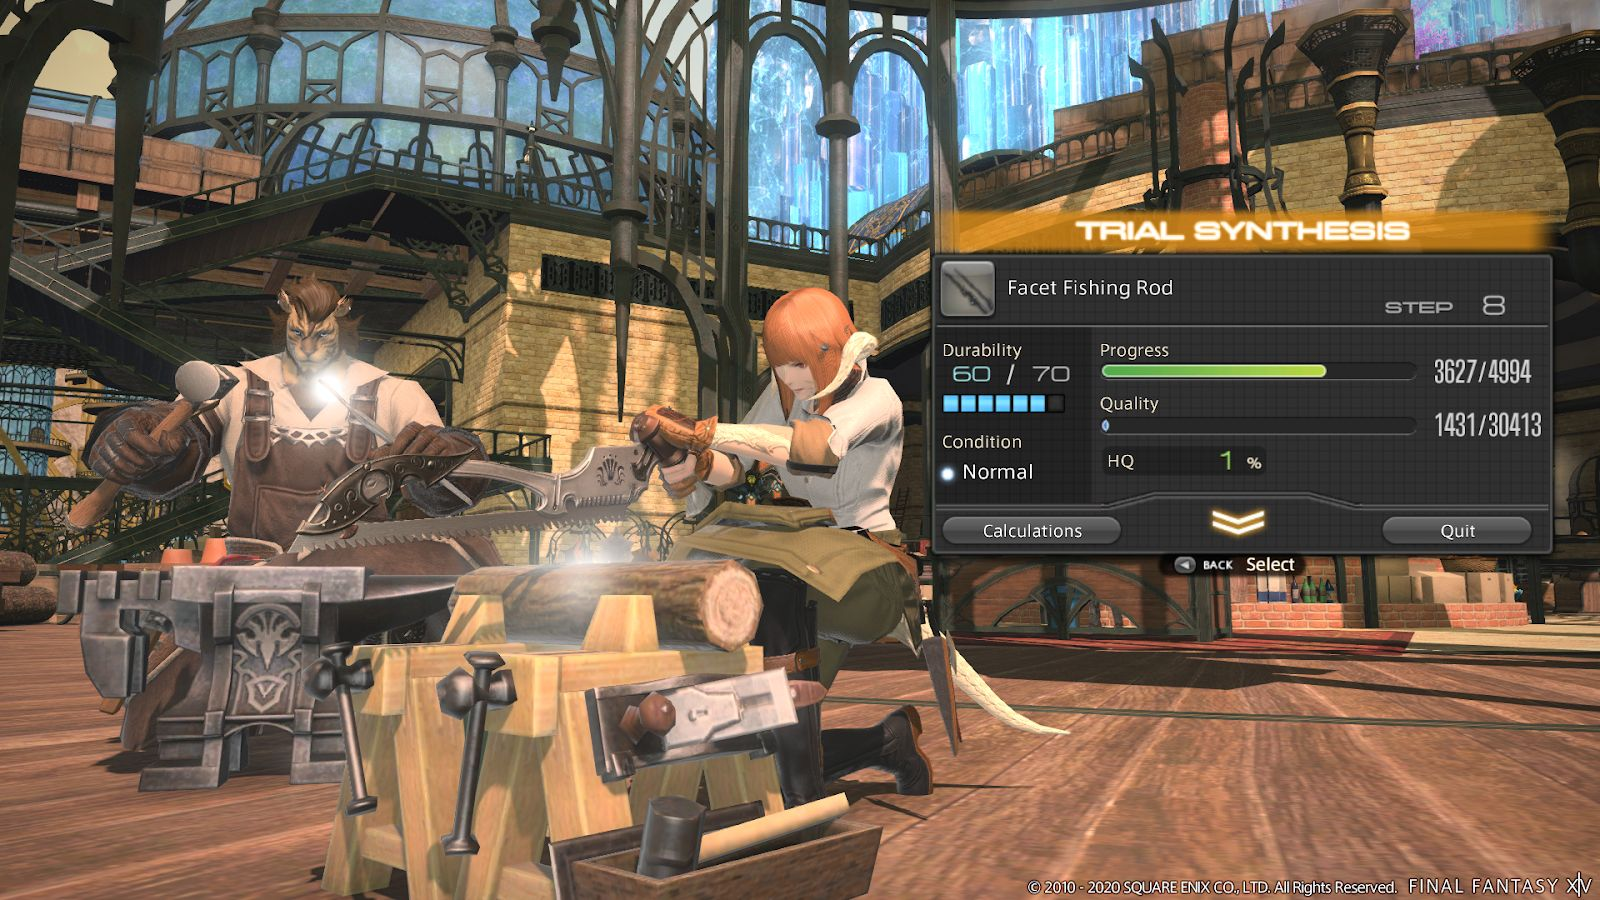 /ffxiv-crafting-guide-shadowbringers-level-1-44w33r7 feature image